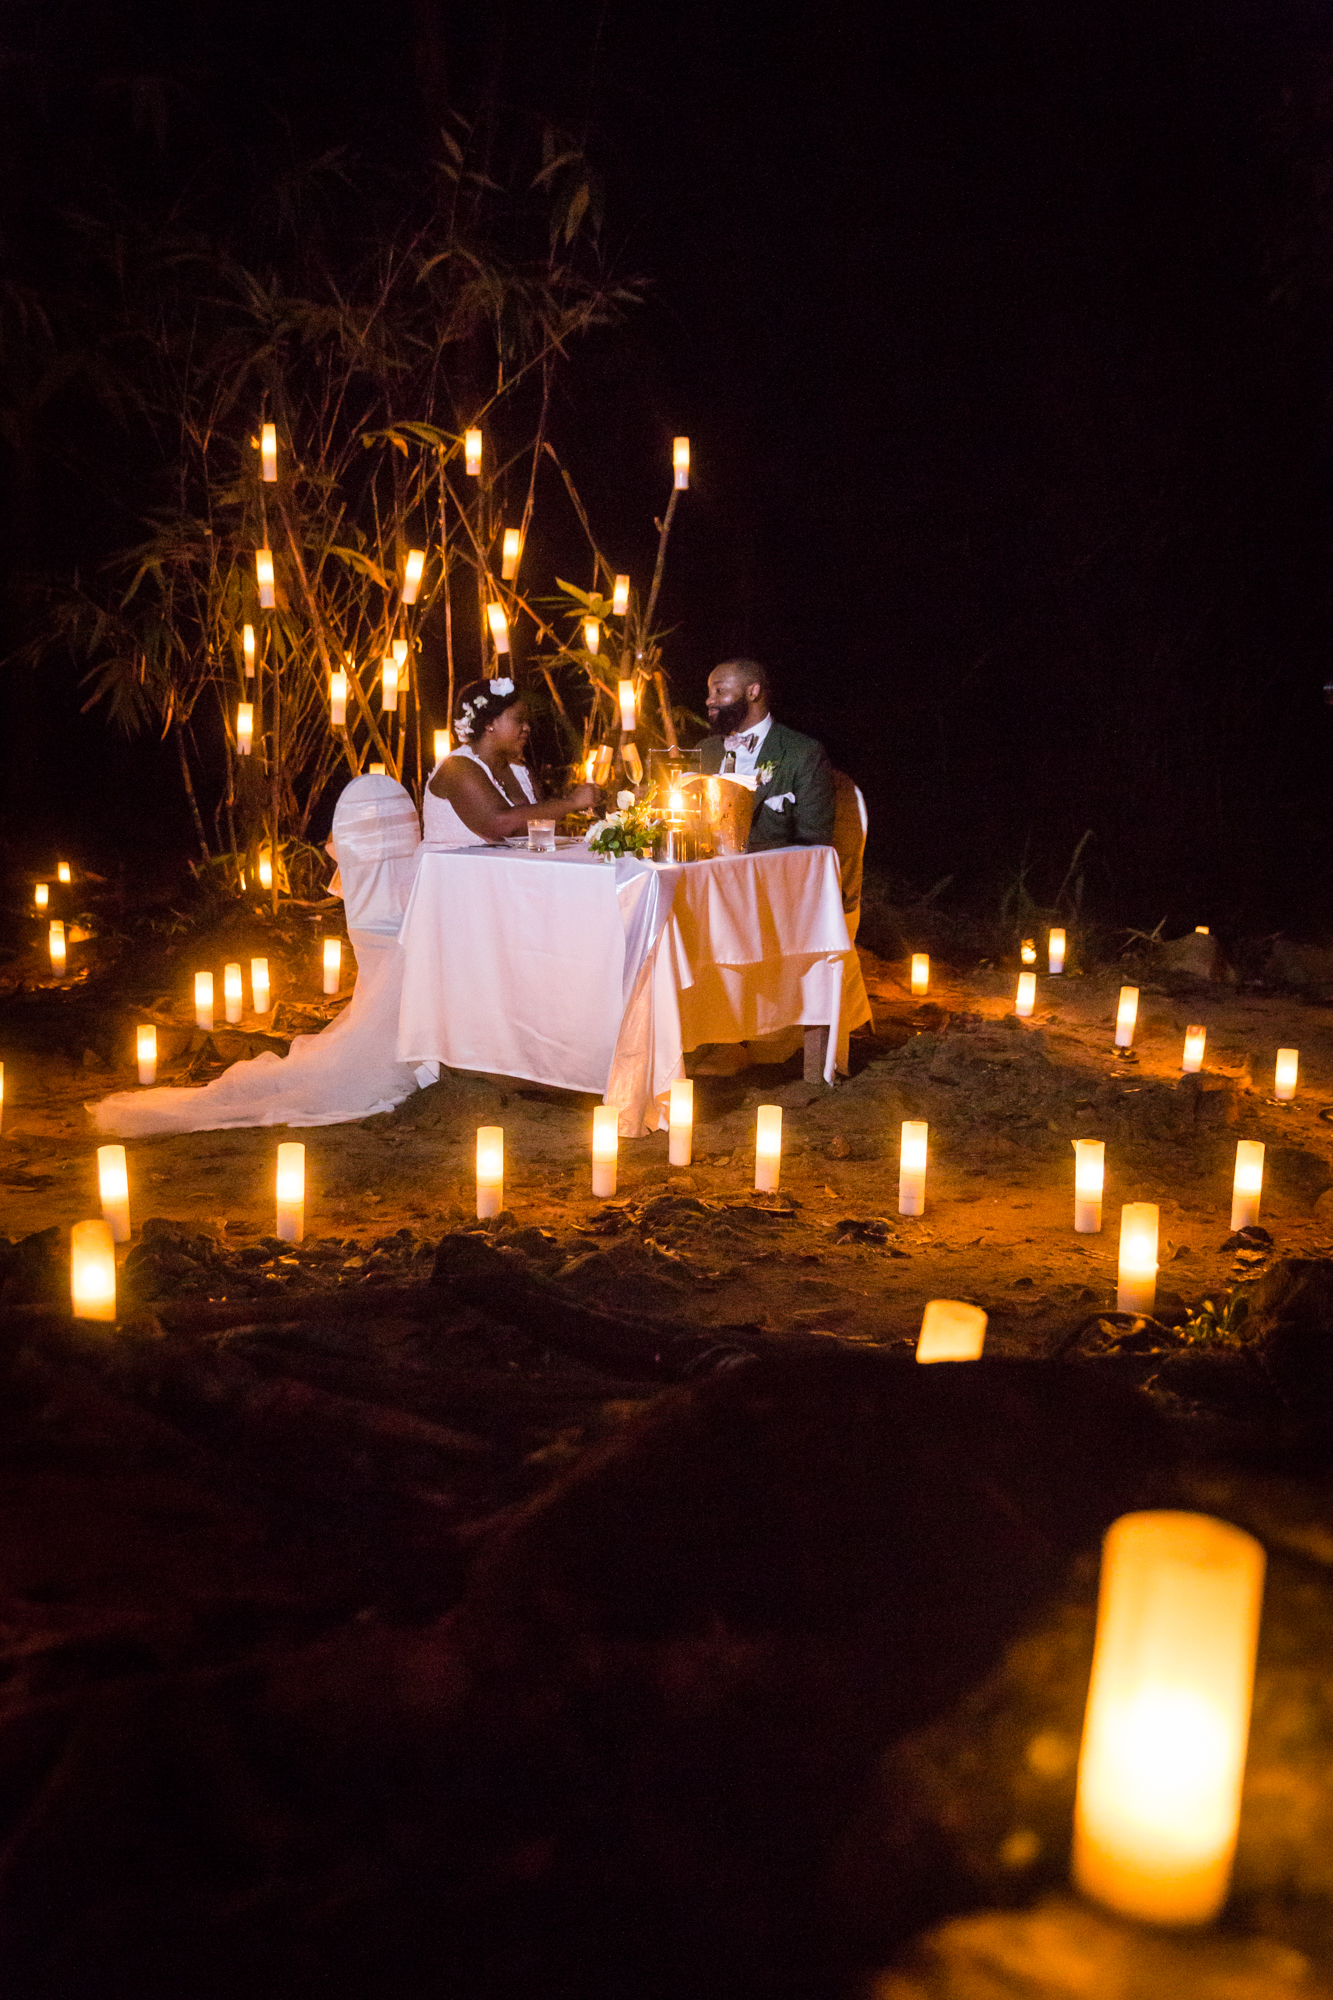 Bride and groom dining by candlelight for an article on destination wedding planning tips